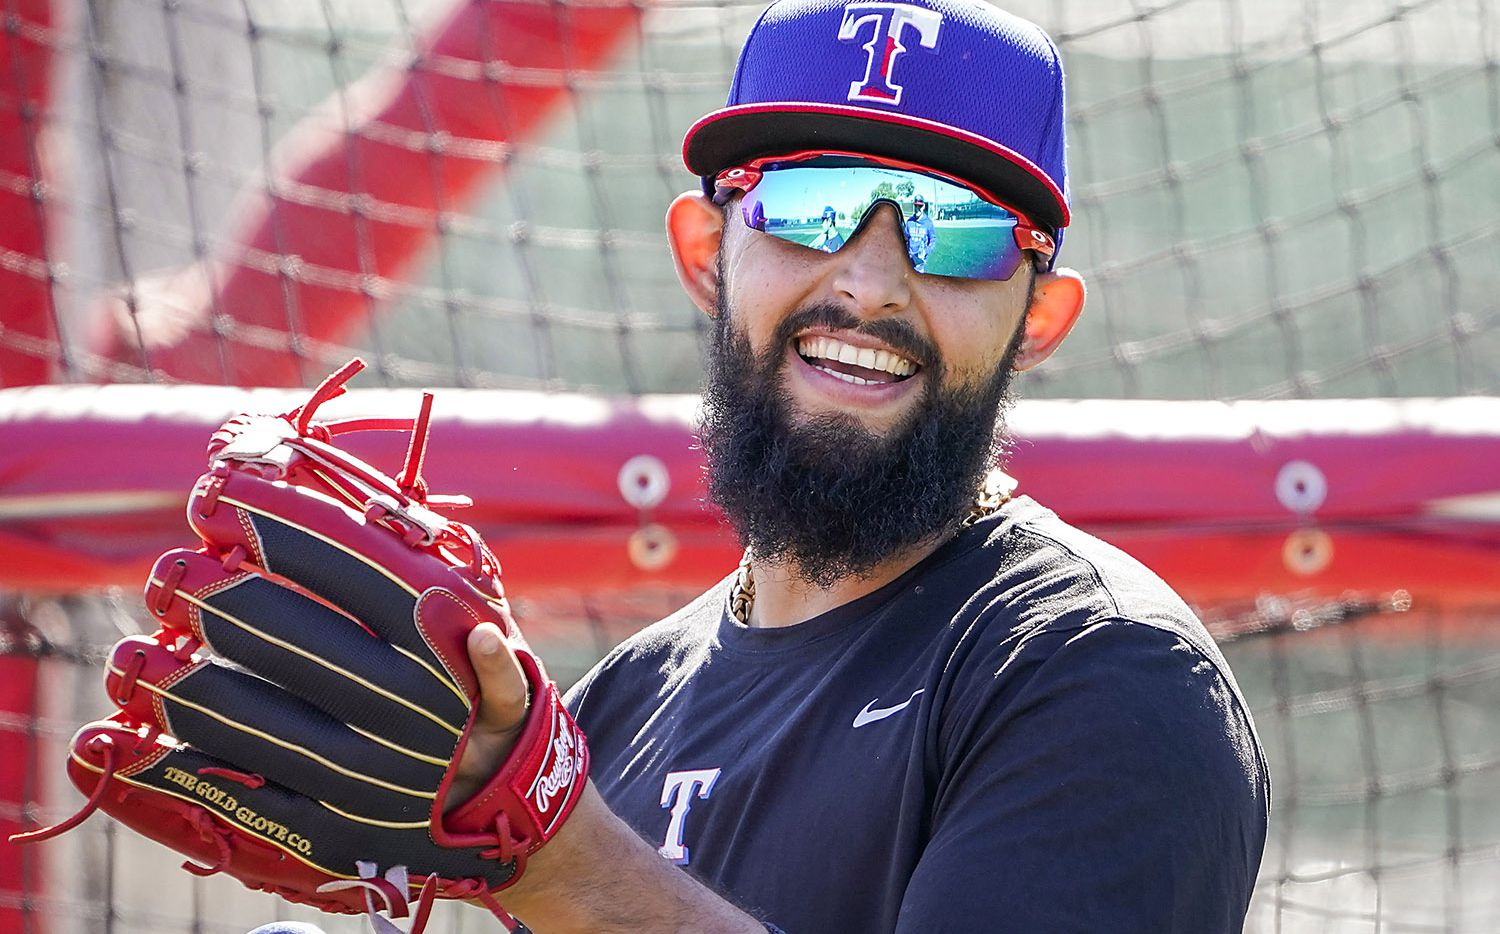 Texas Rangers second baseman Rougned Odor laughs with teammates during a spring training workout at the team's training facility on Friday, Feb. 14, 2020, in Surprise, Ariz.